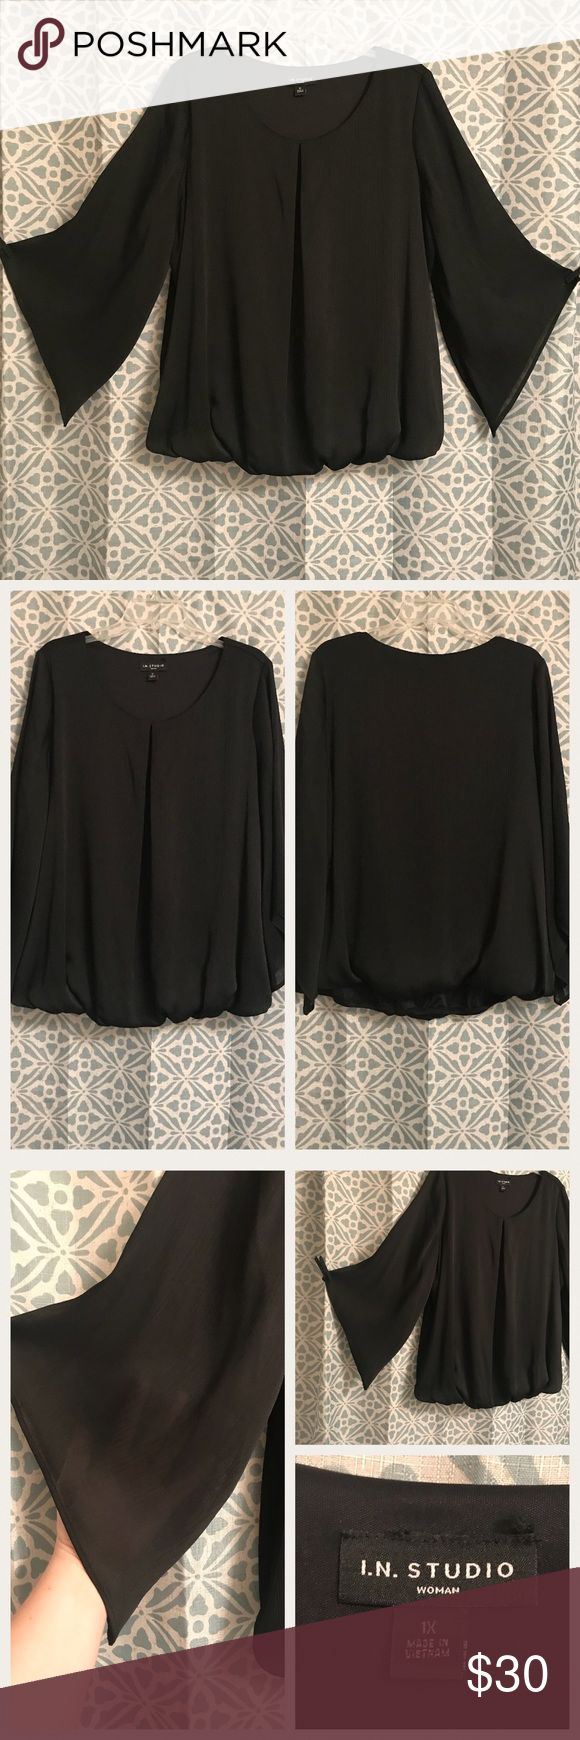 "I. N. Studio blouse Black blouse with a flattering ""A"" line pleat in front and slightly shear trapeze sleeves. Dillard's find.   Only worn twice, just not for me. Brand new condition!!   💕Pair with a statement necklace for a quick and easy work outfit💕 I.N. Studio Tops Blouses"